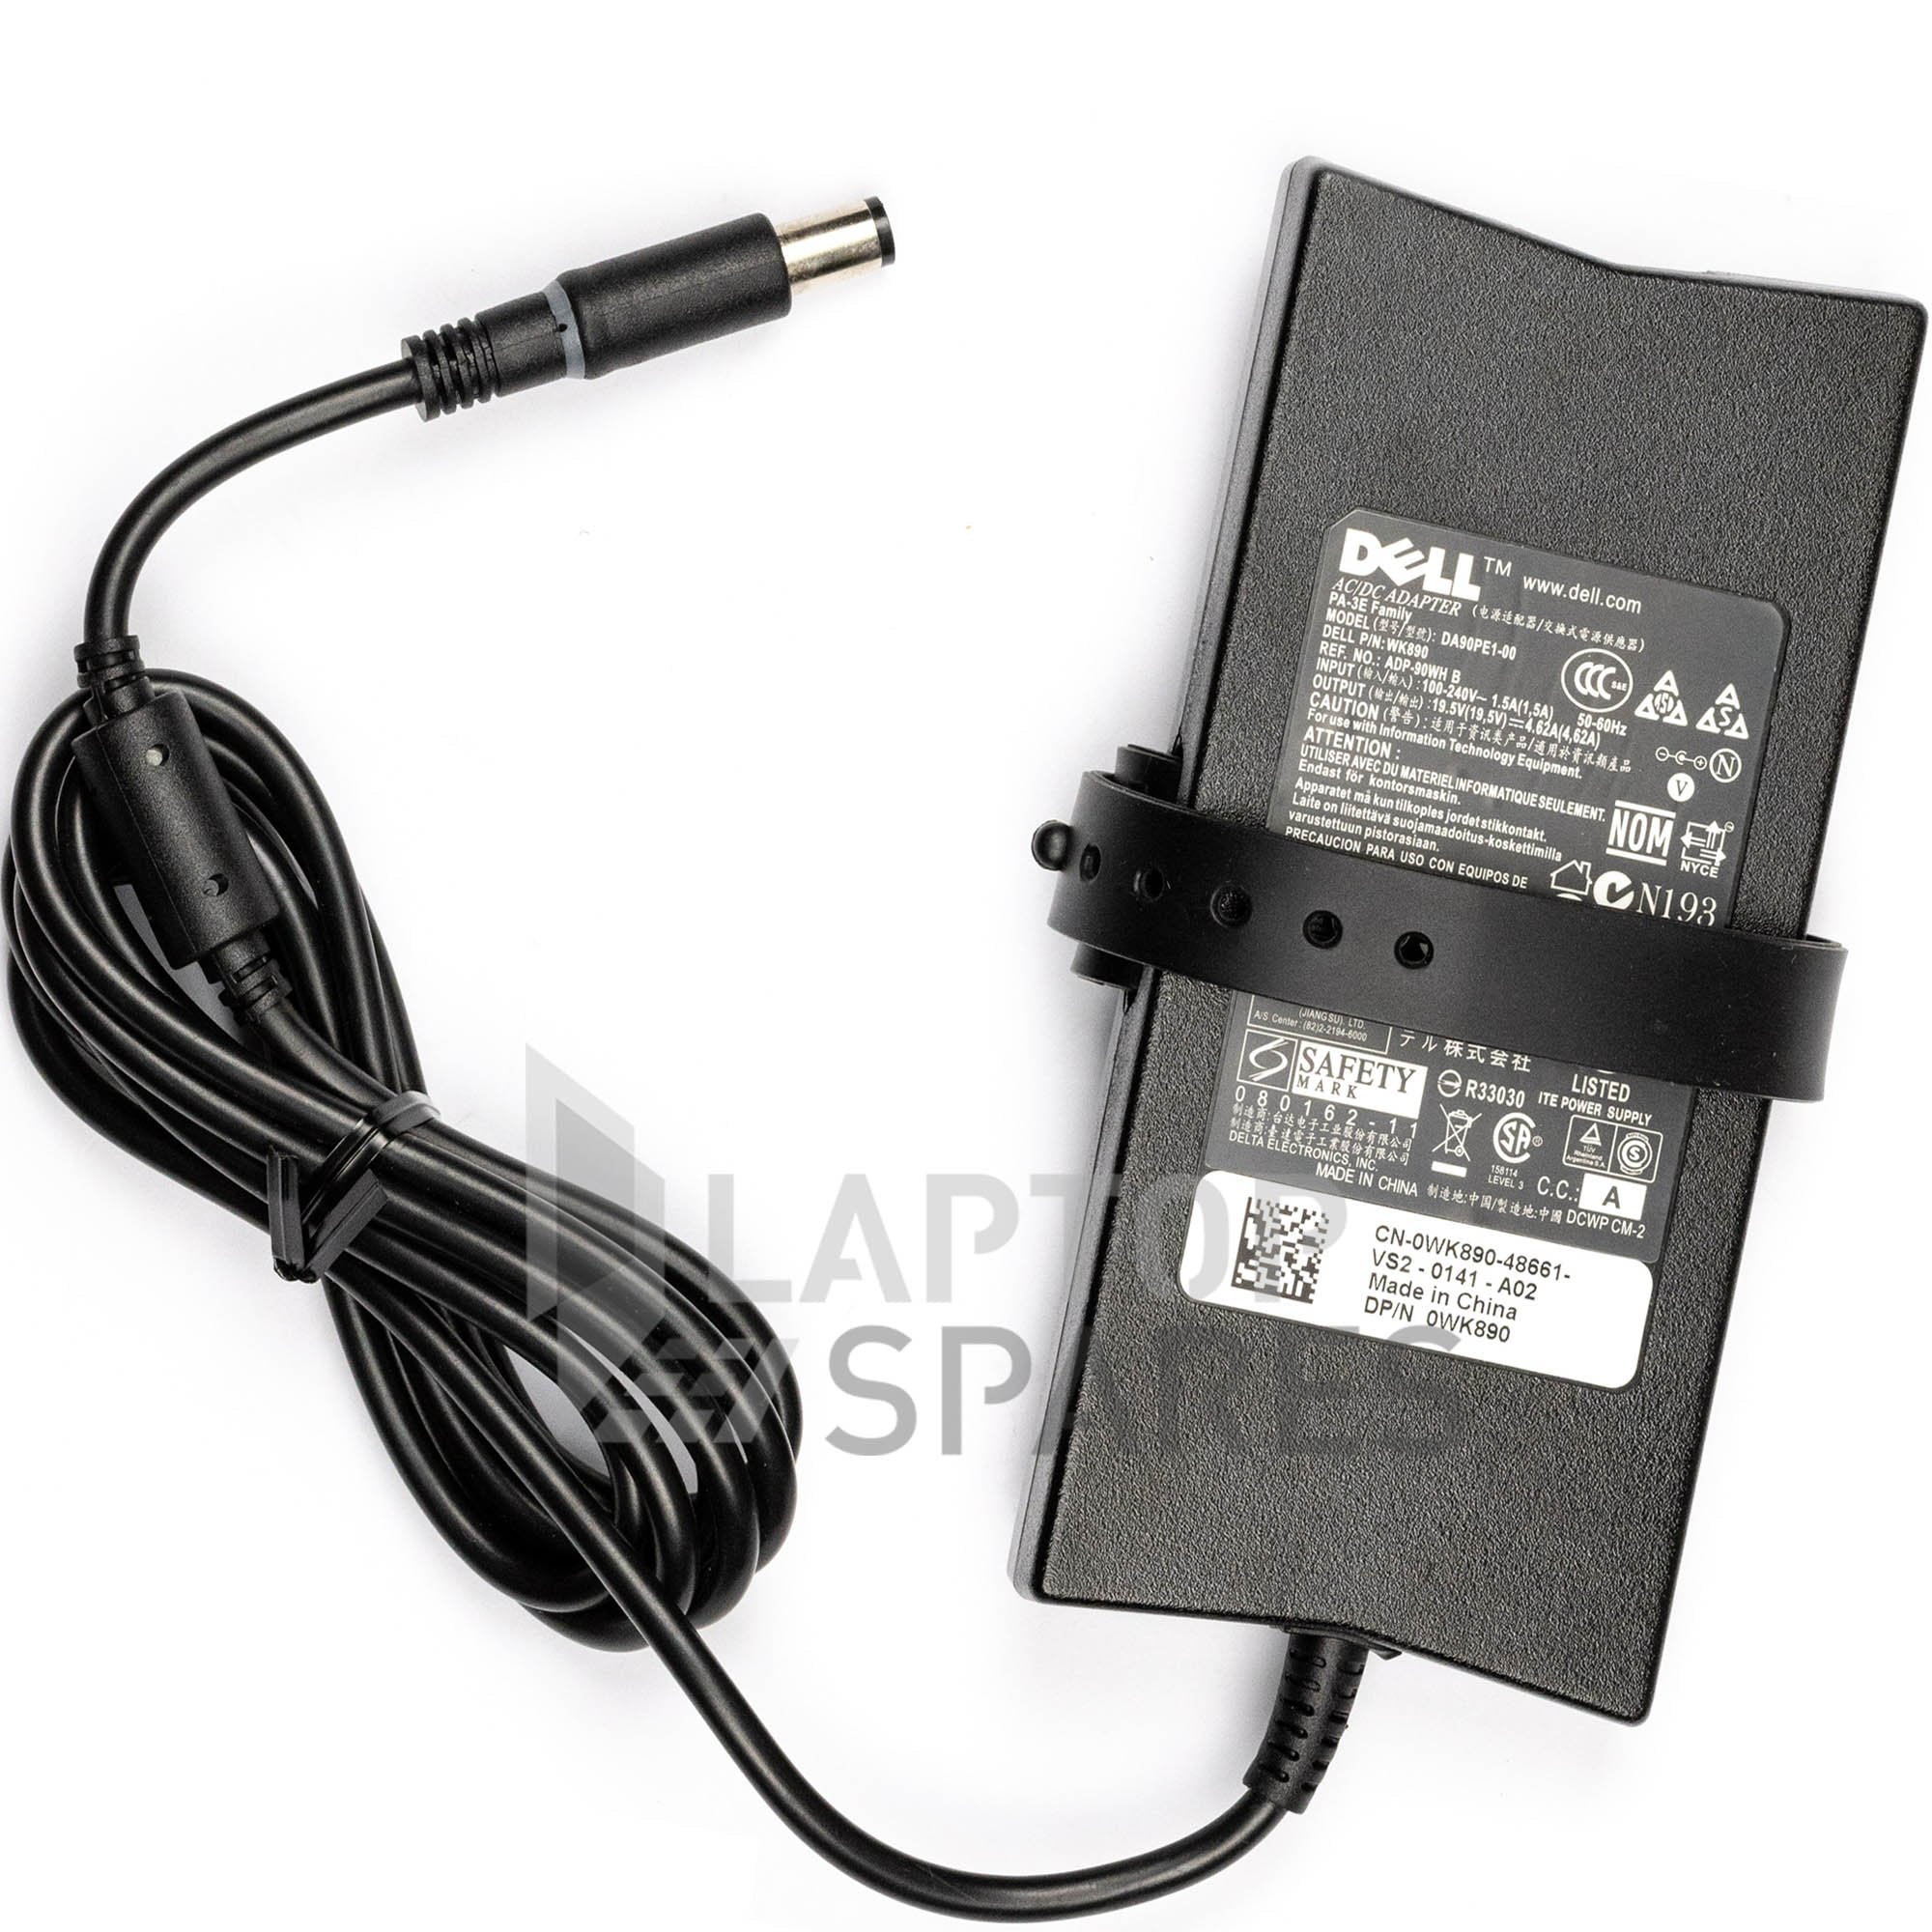 Dell Precision Mobile M4300 M4400 Laptop Slim AC Adapter Charger